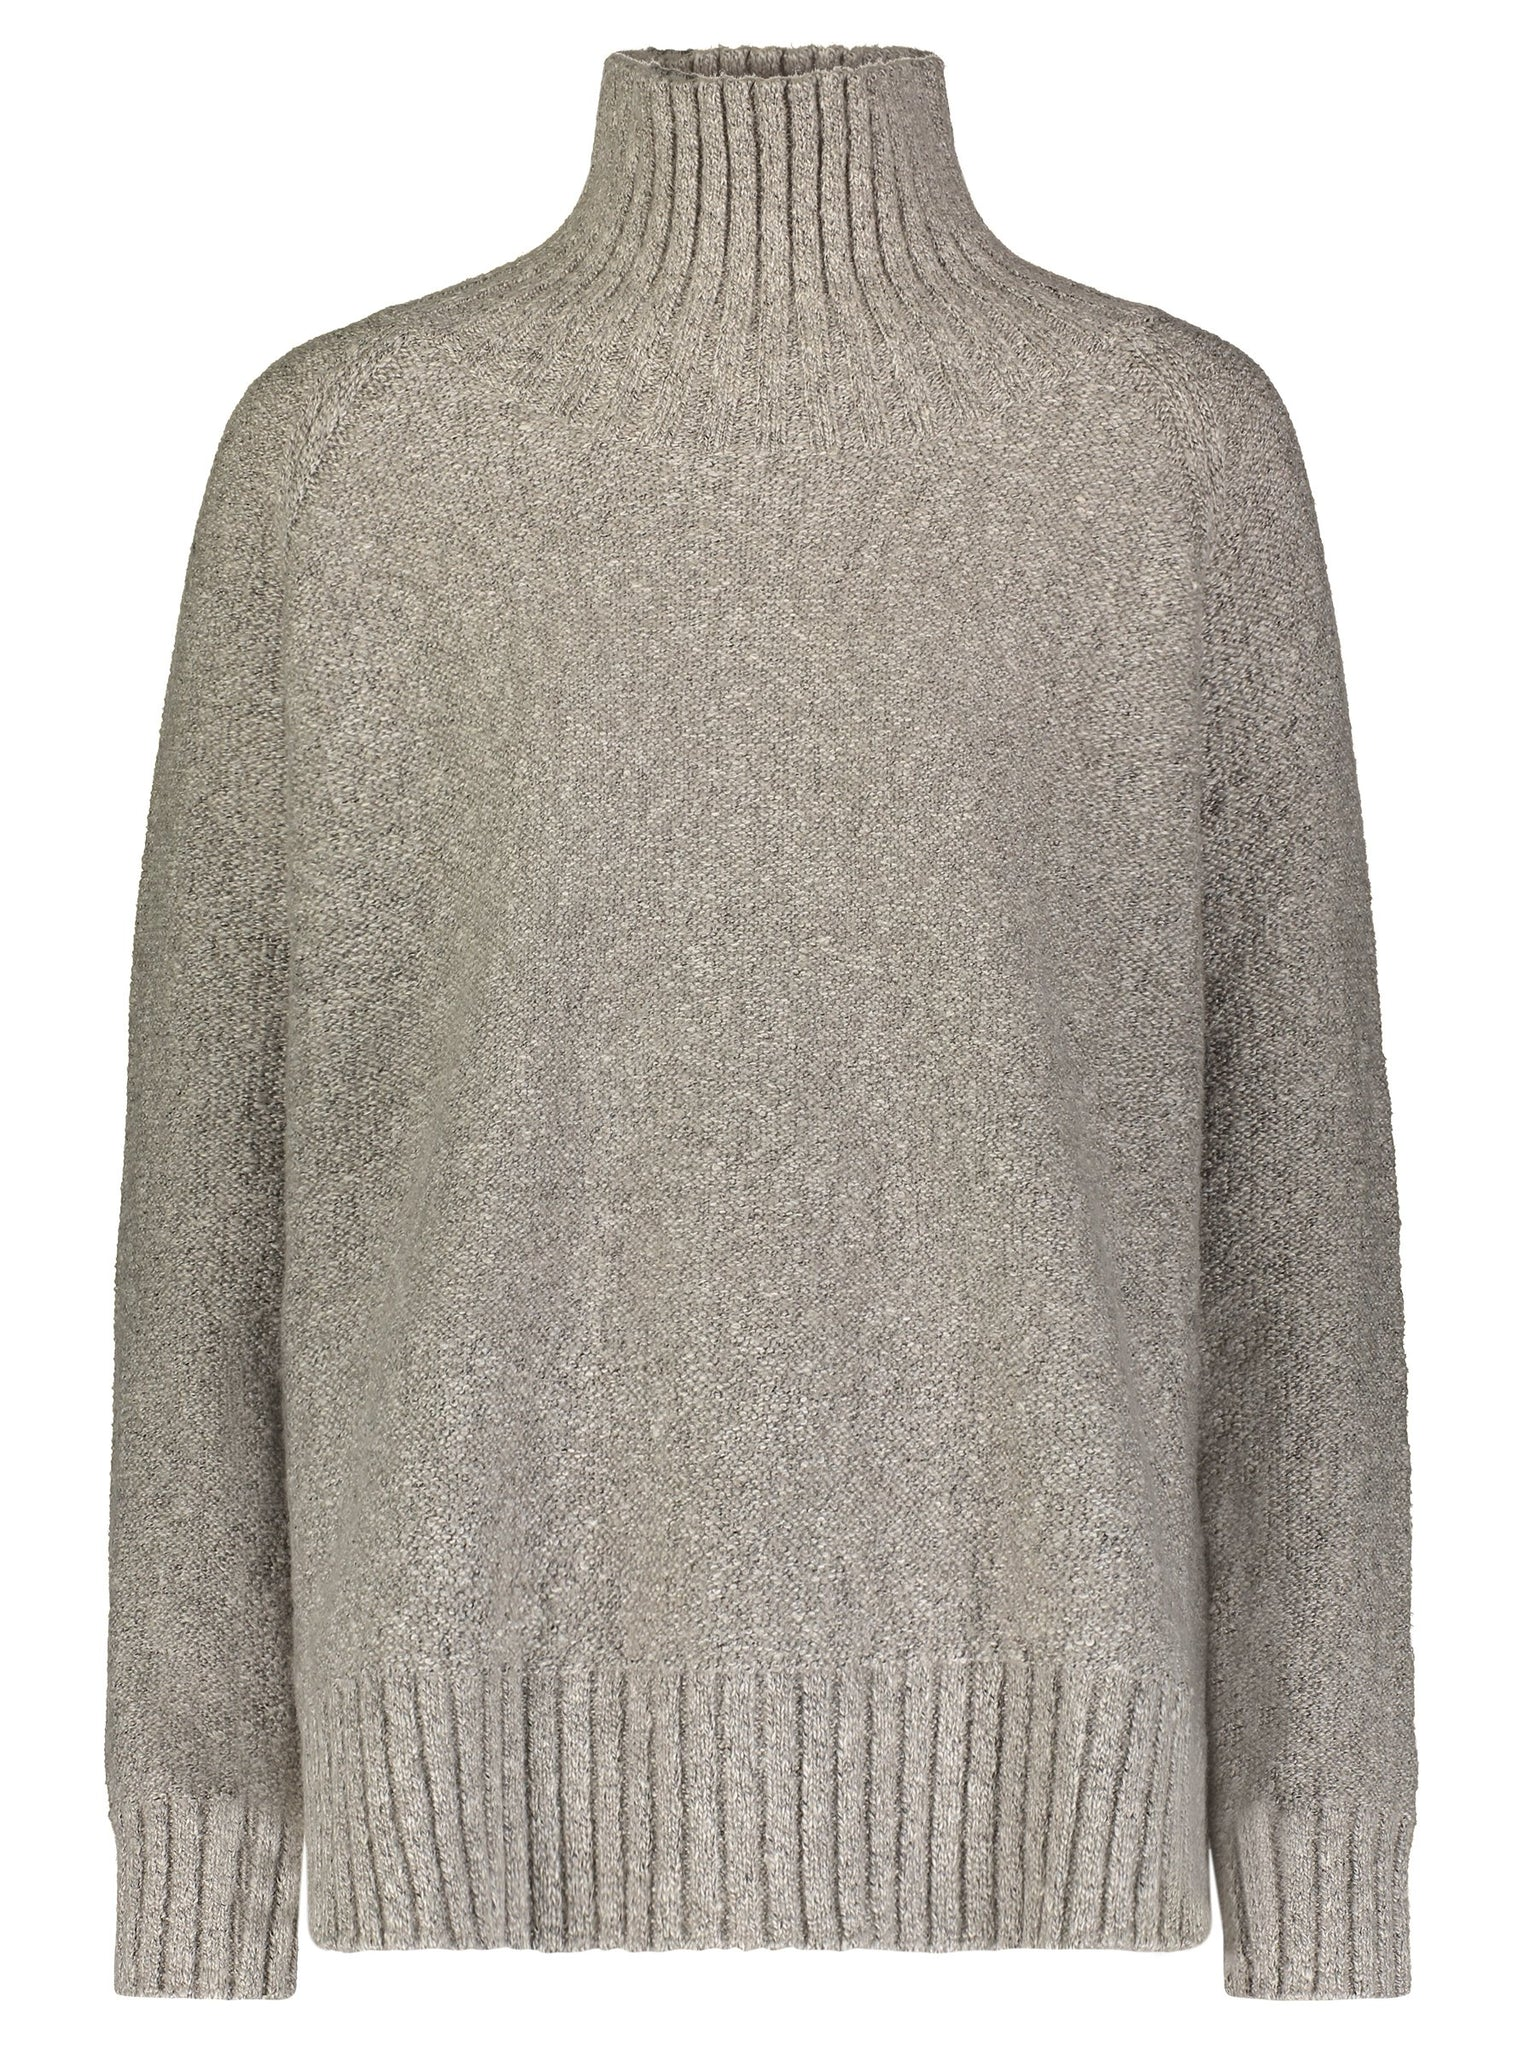 image of Rossi Turtleneck Sweater